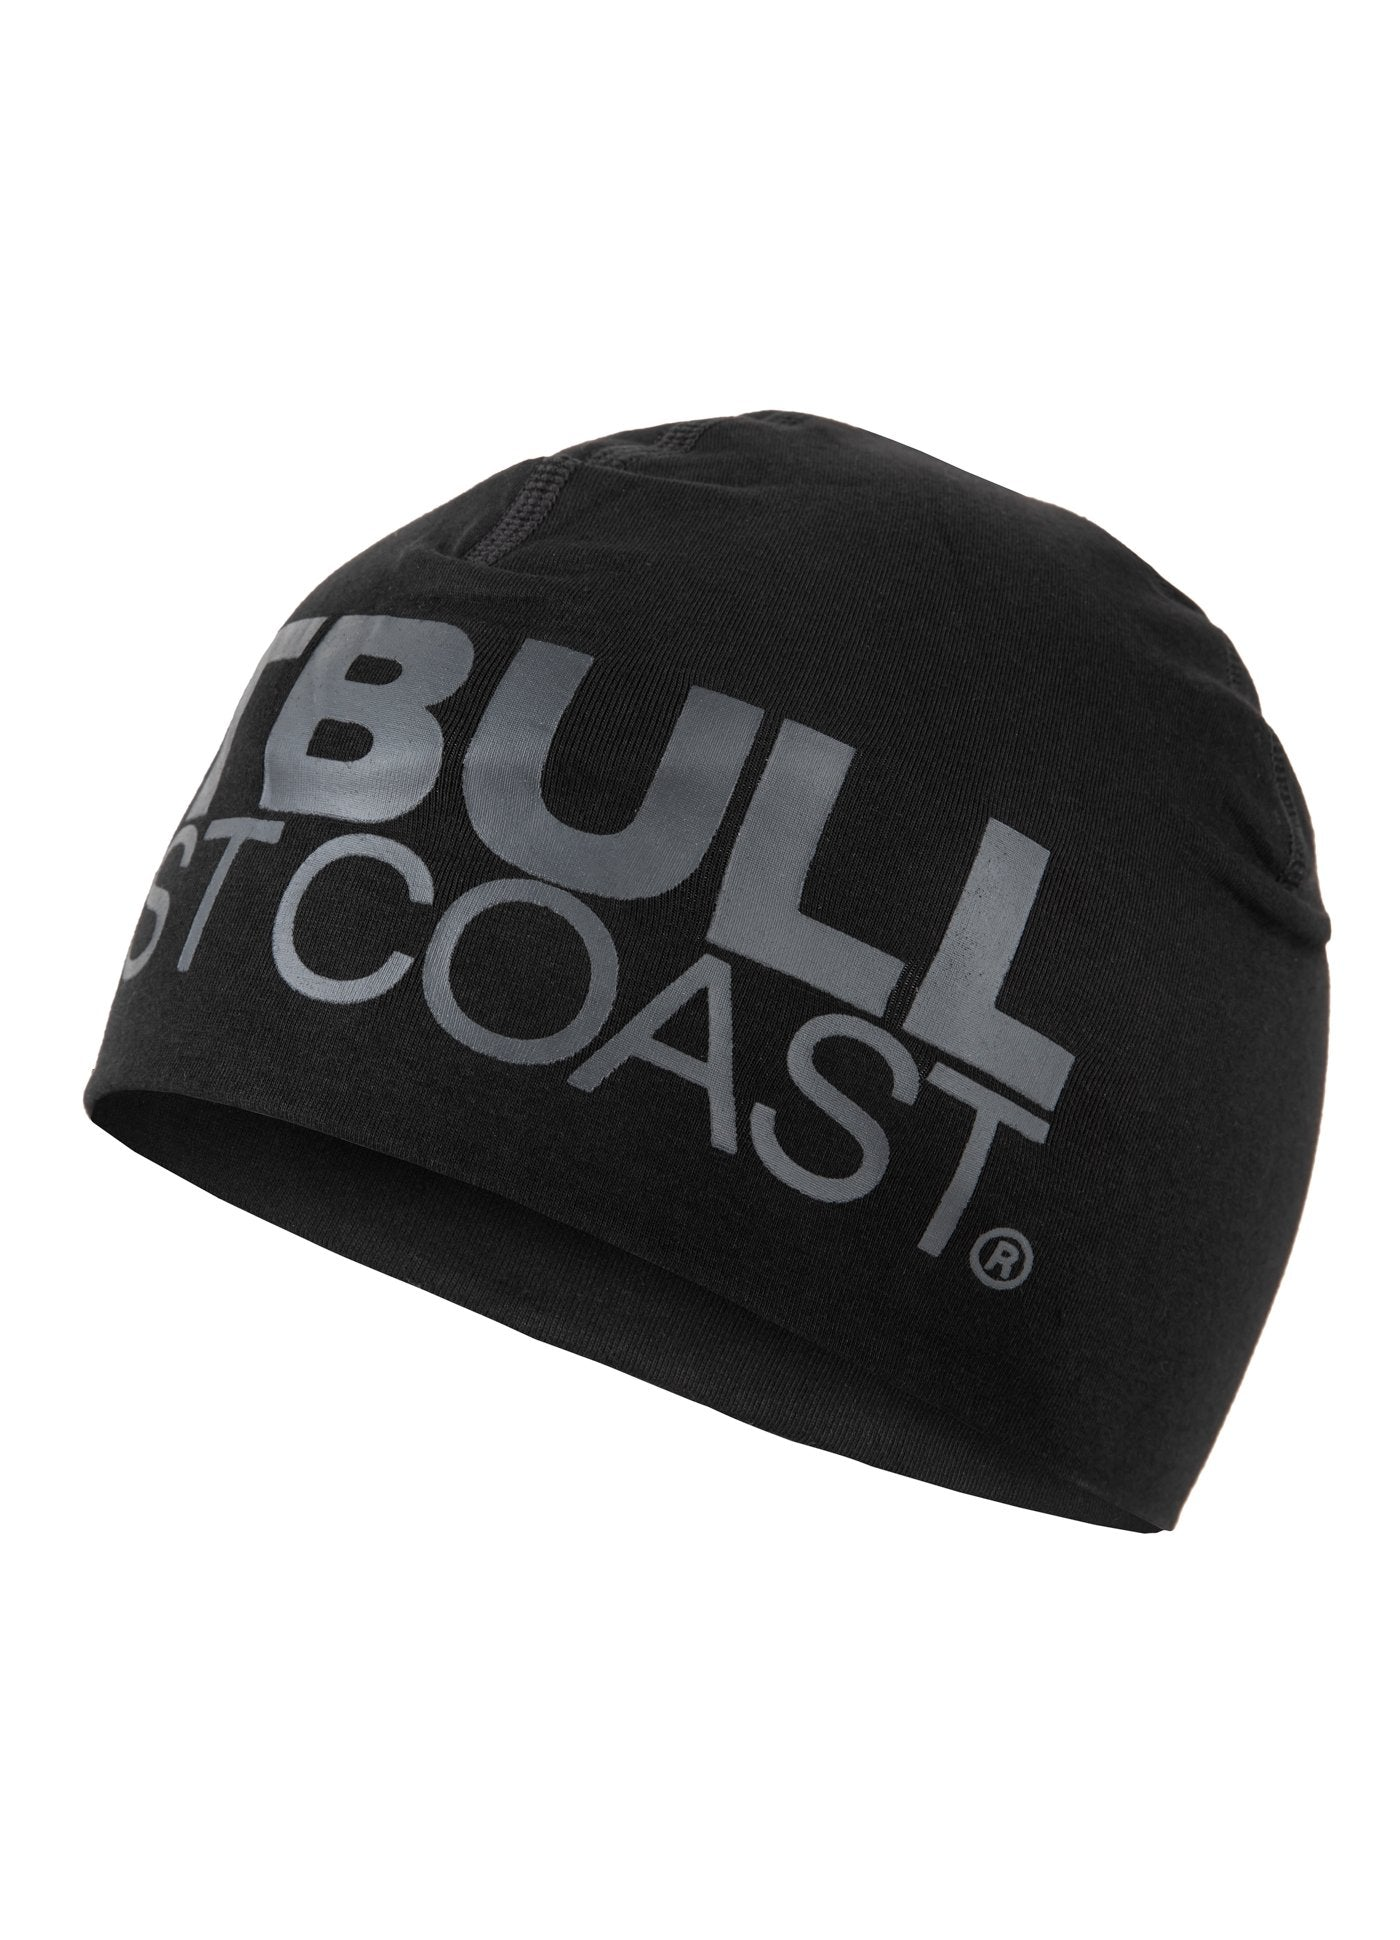 Compression Beanie TNT Black/Black - Pitbull West Coast U.S.A.